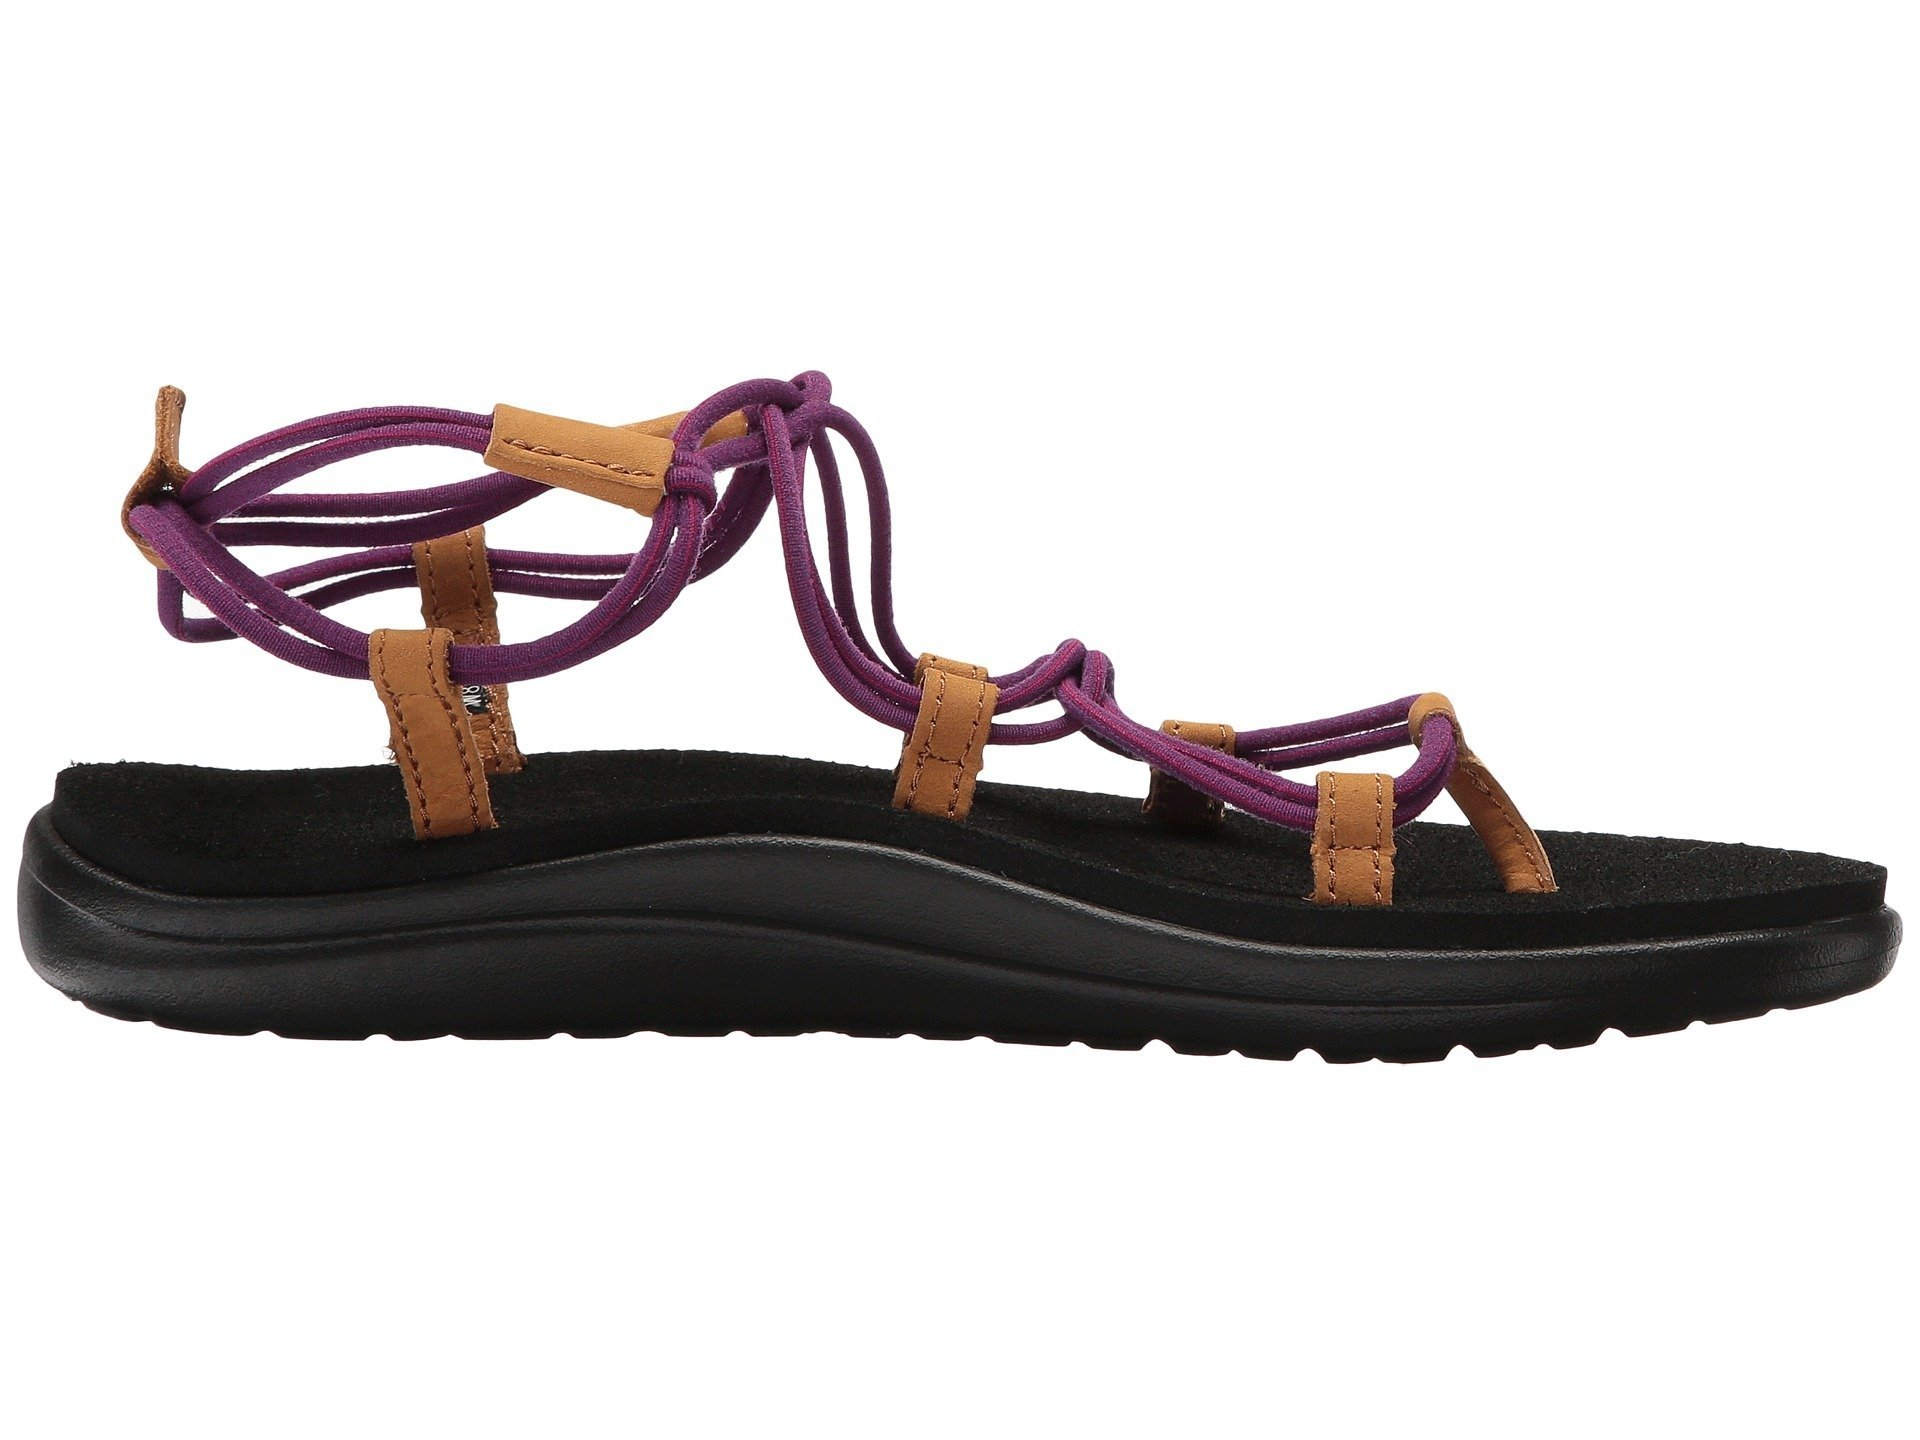 Teva Voya Infinity Sandal Women's Hiking 10 Boysenberry by Teva